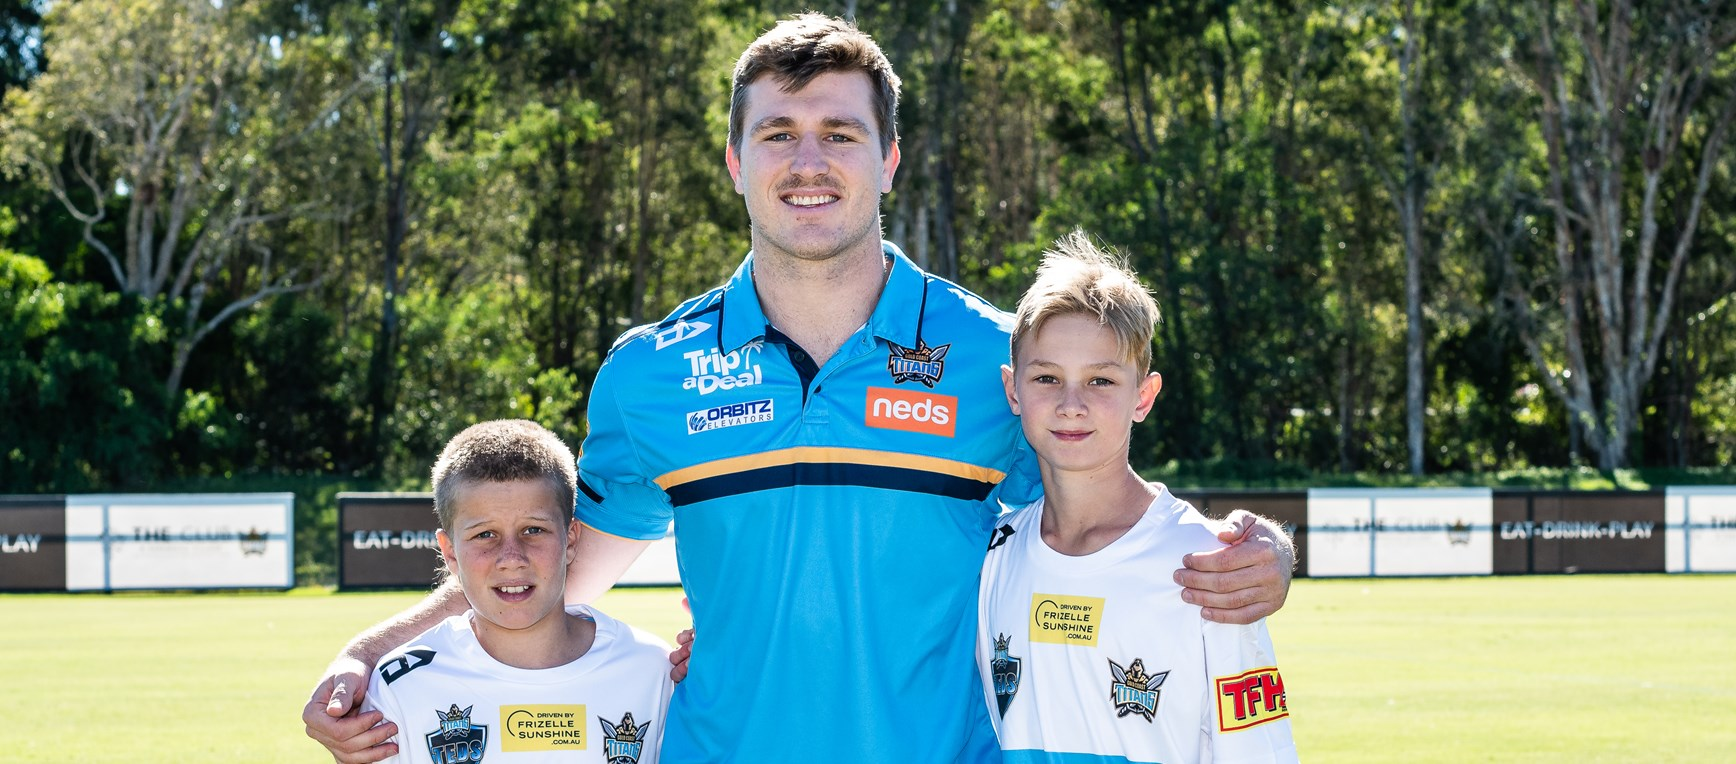 The Gold Coast Titans Under 12 Experience Day